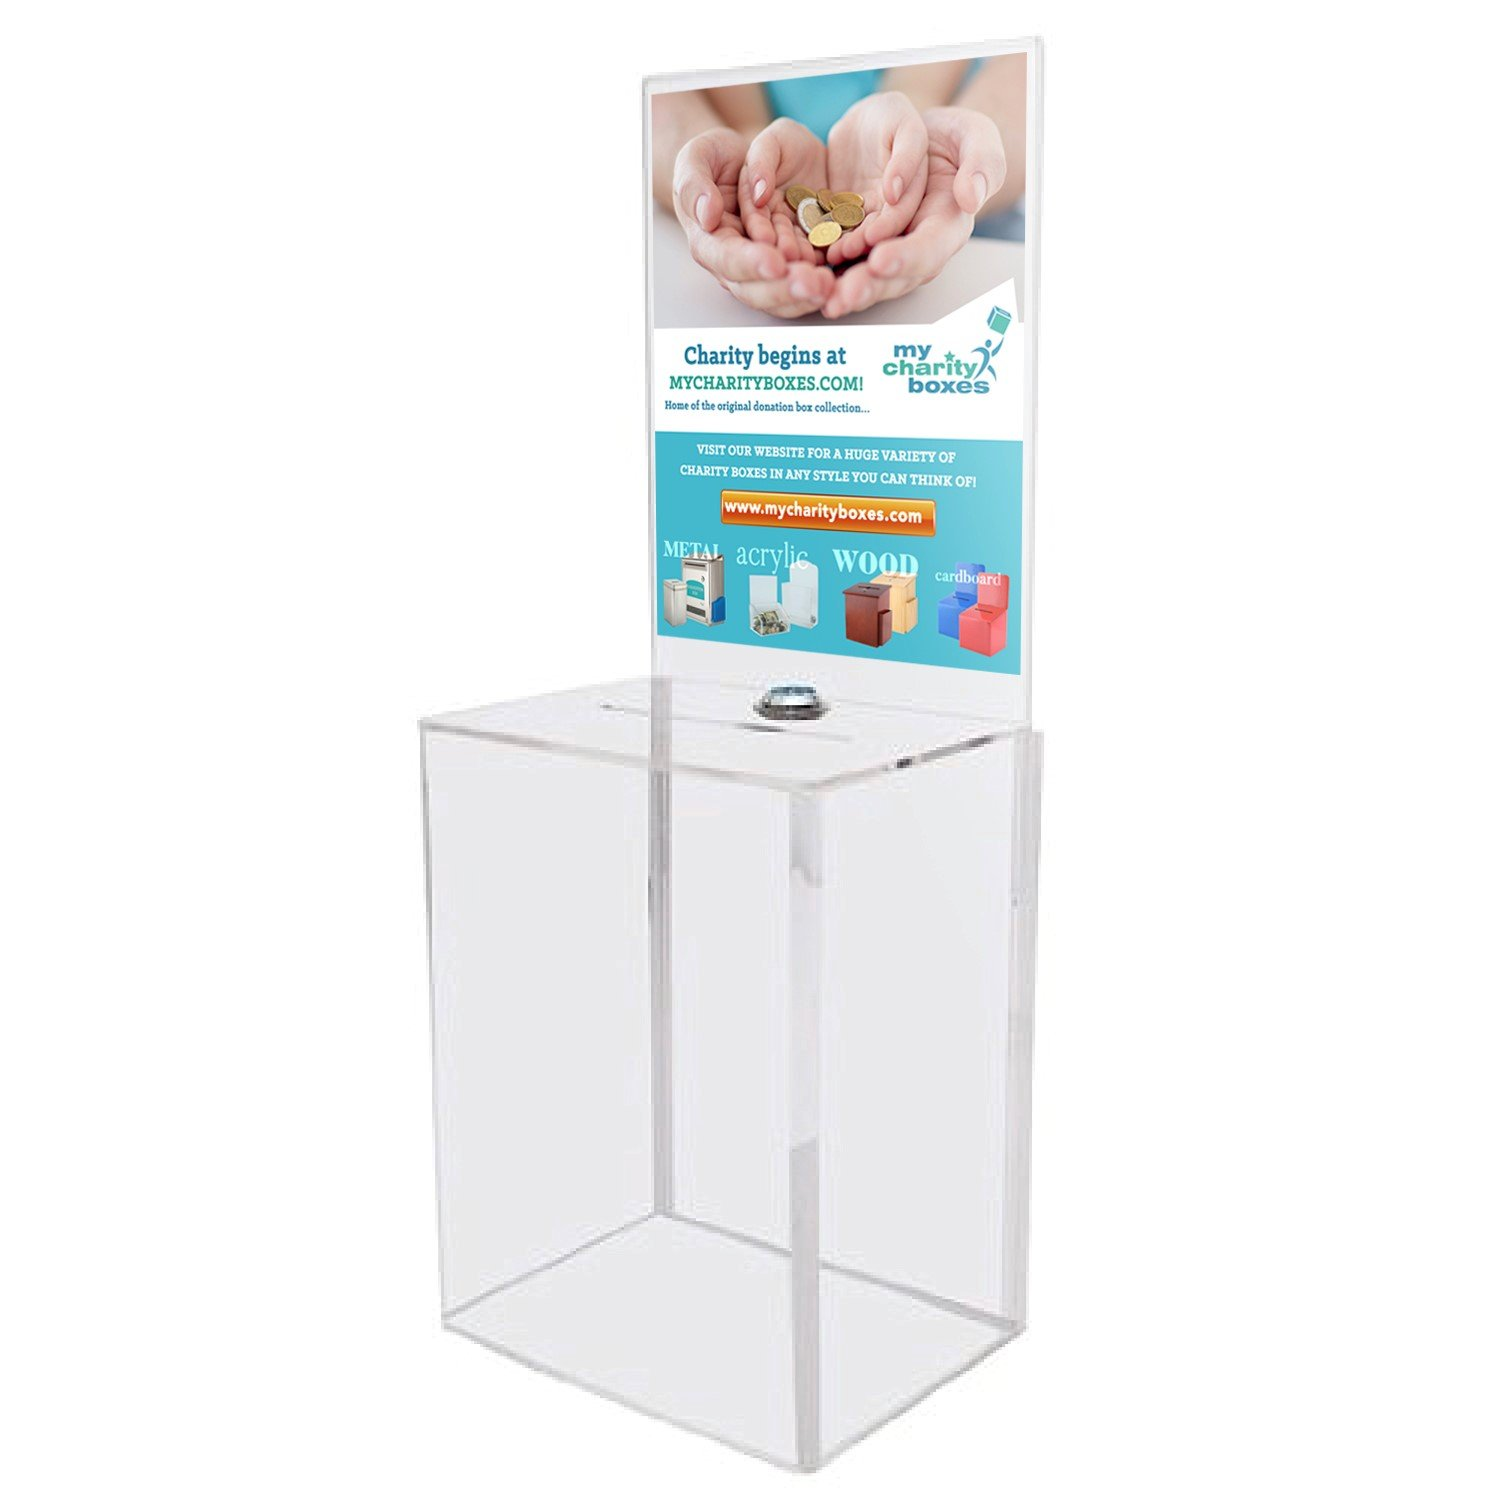 MCB Large Donation Box - Ballot Box - Suggestion Box - Ticket Box - Tip Container - With Large Display Area - Lock and 2 Keys Included(2 Pack) by My Charity Boxes